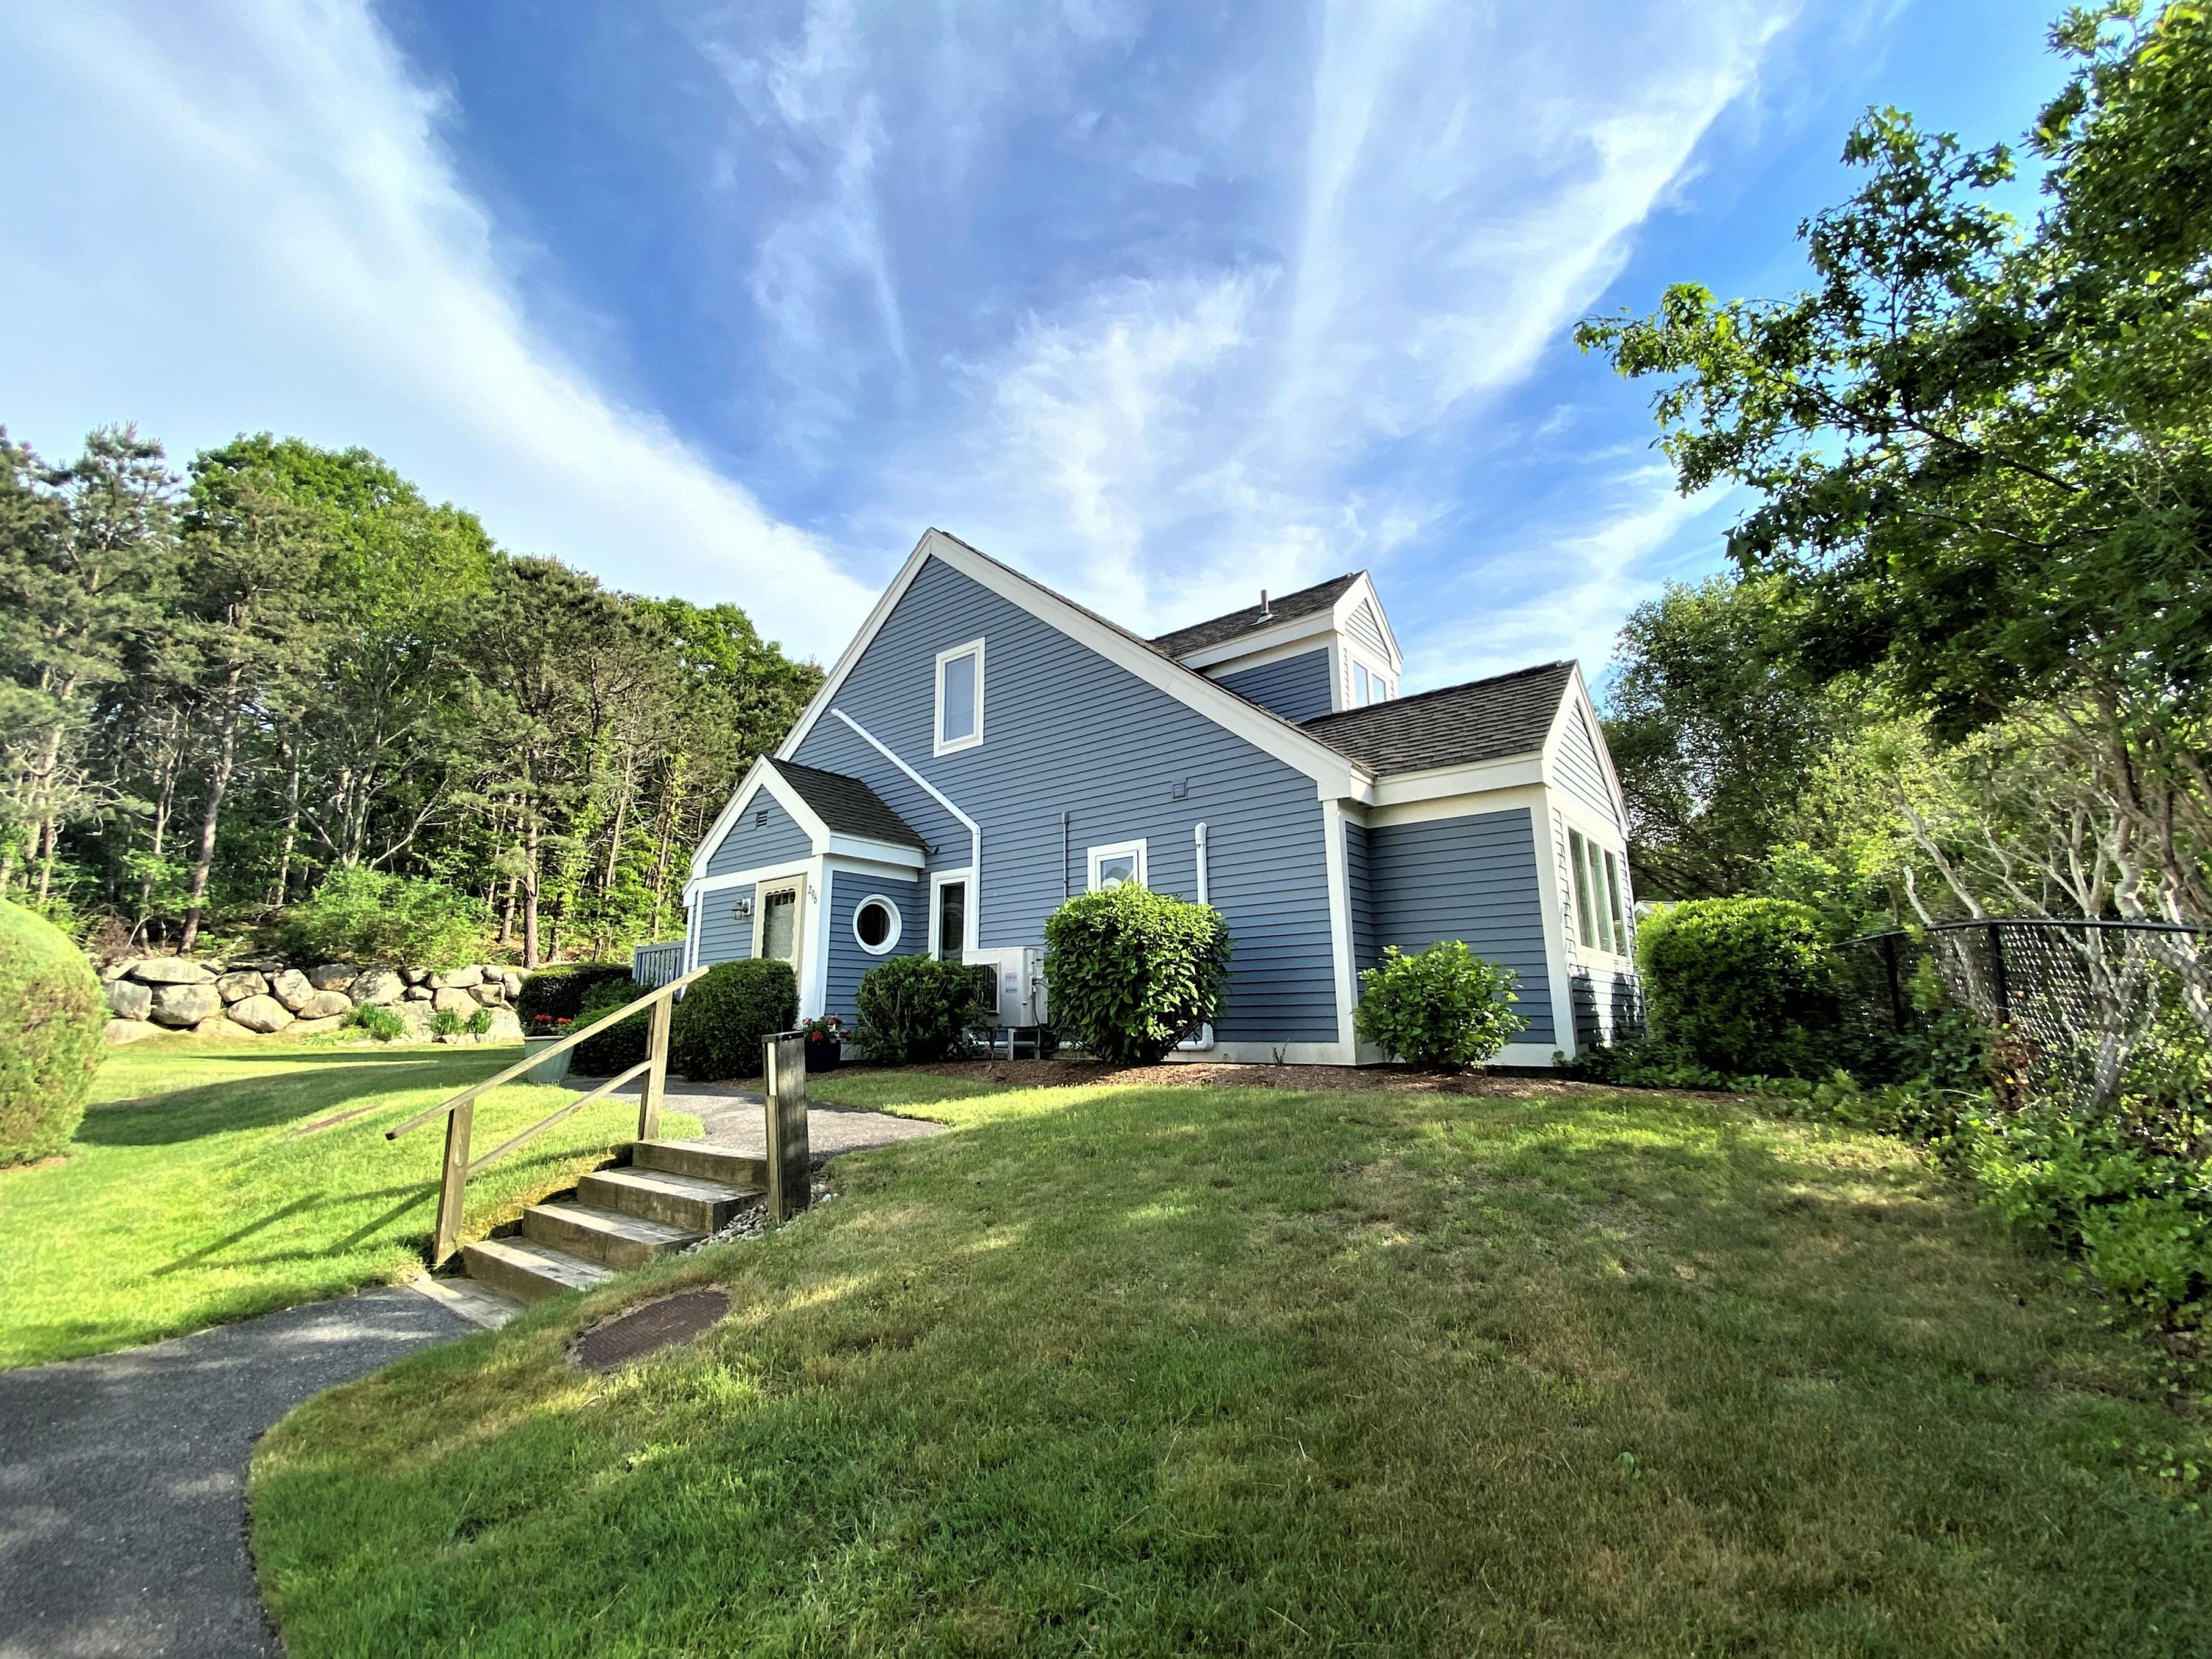 296 Fletcher Lane, Brewster MA, 02631 sales details